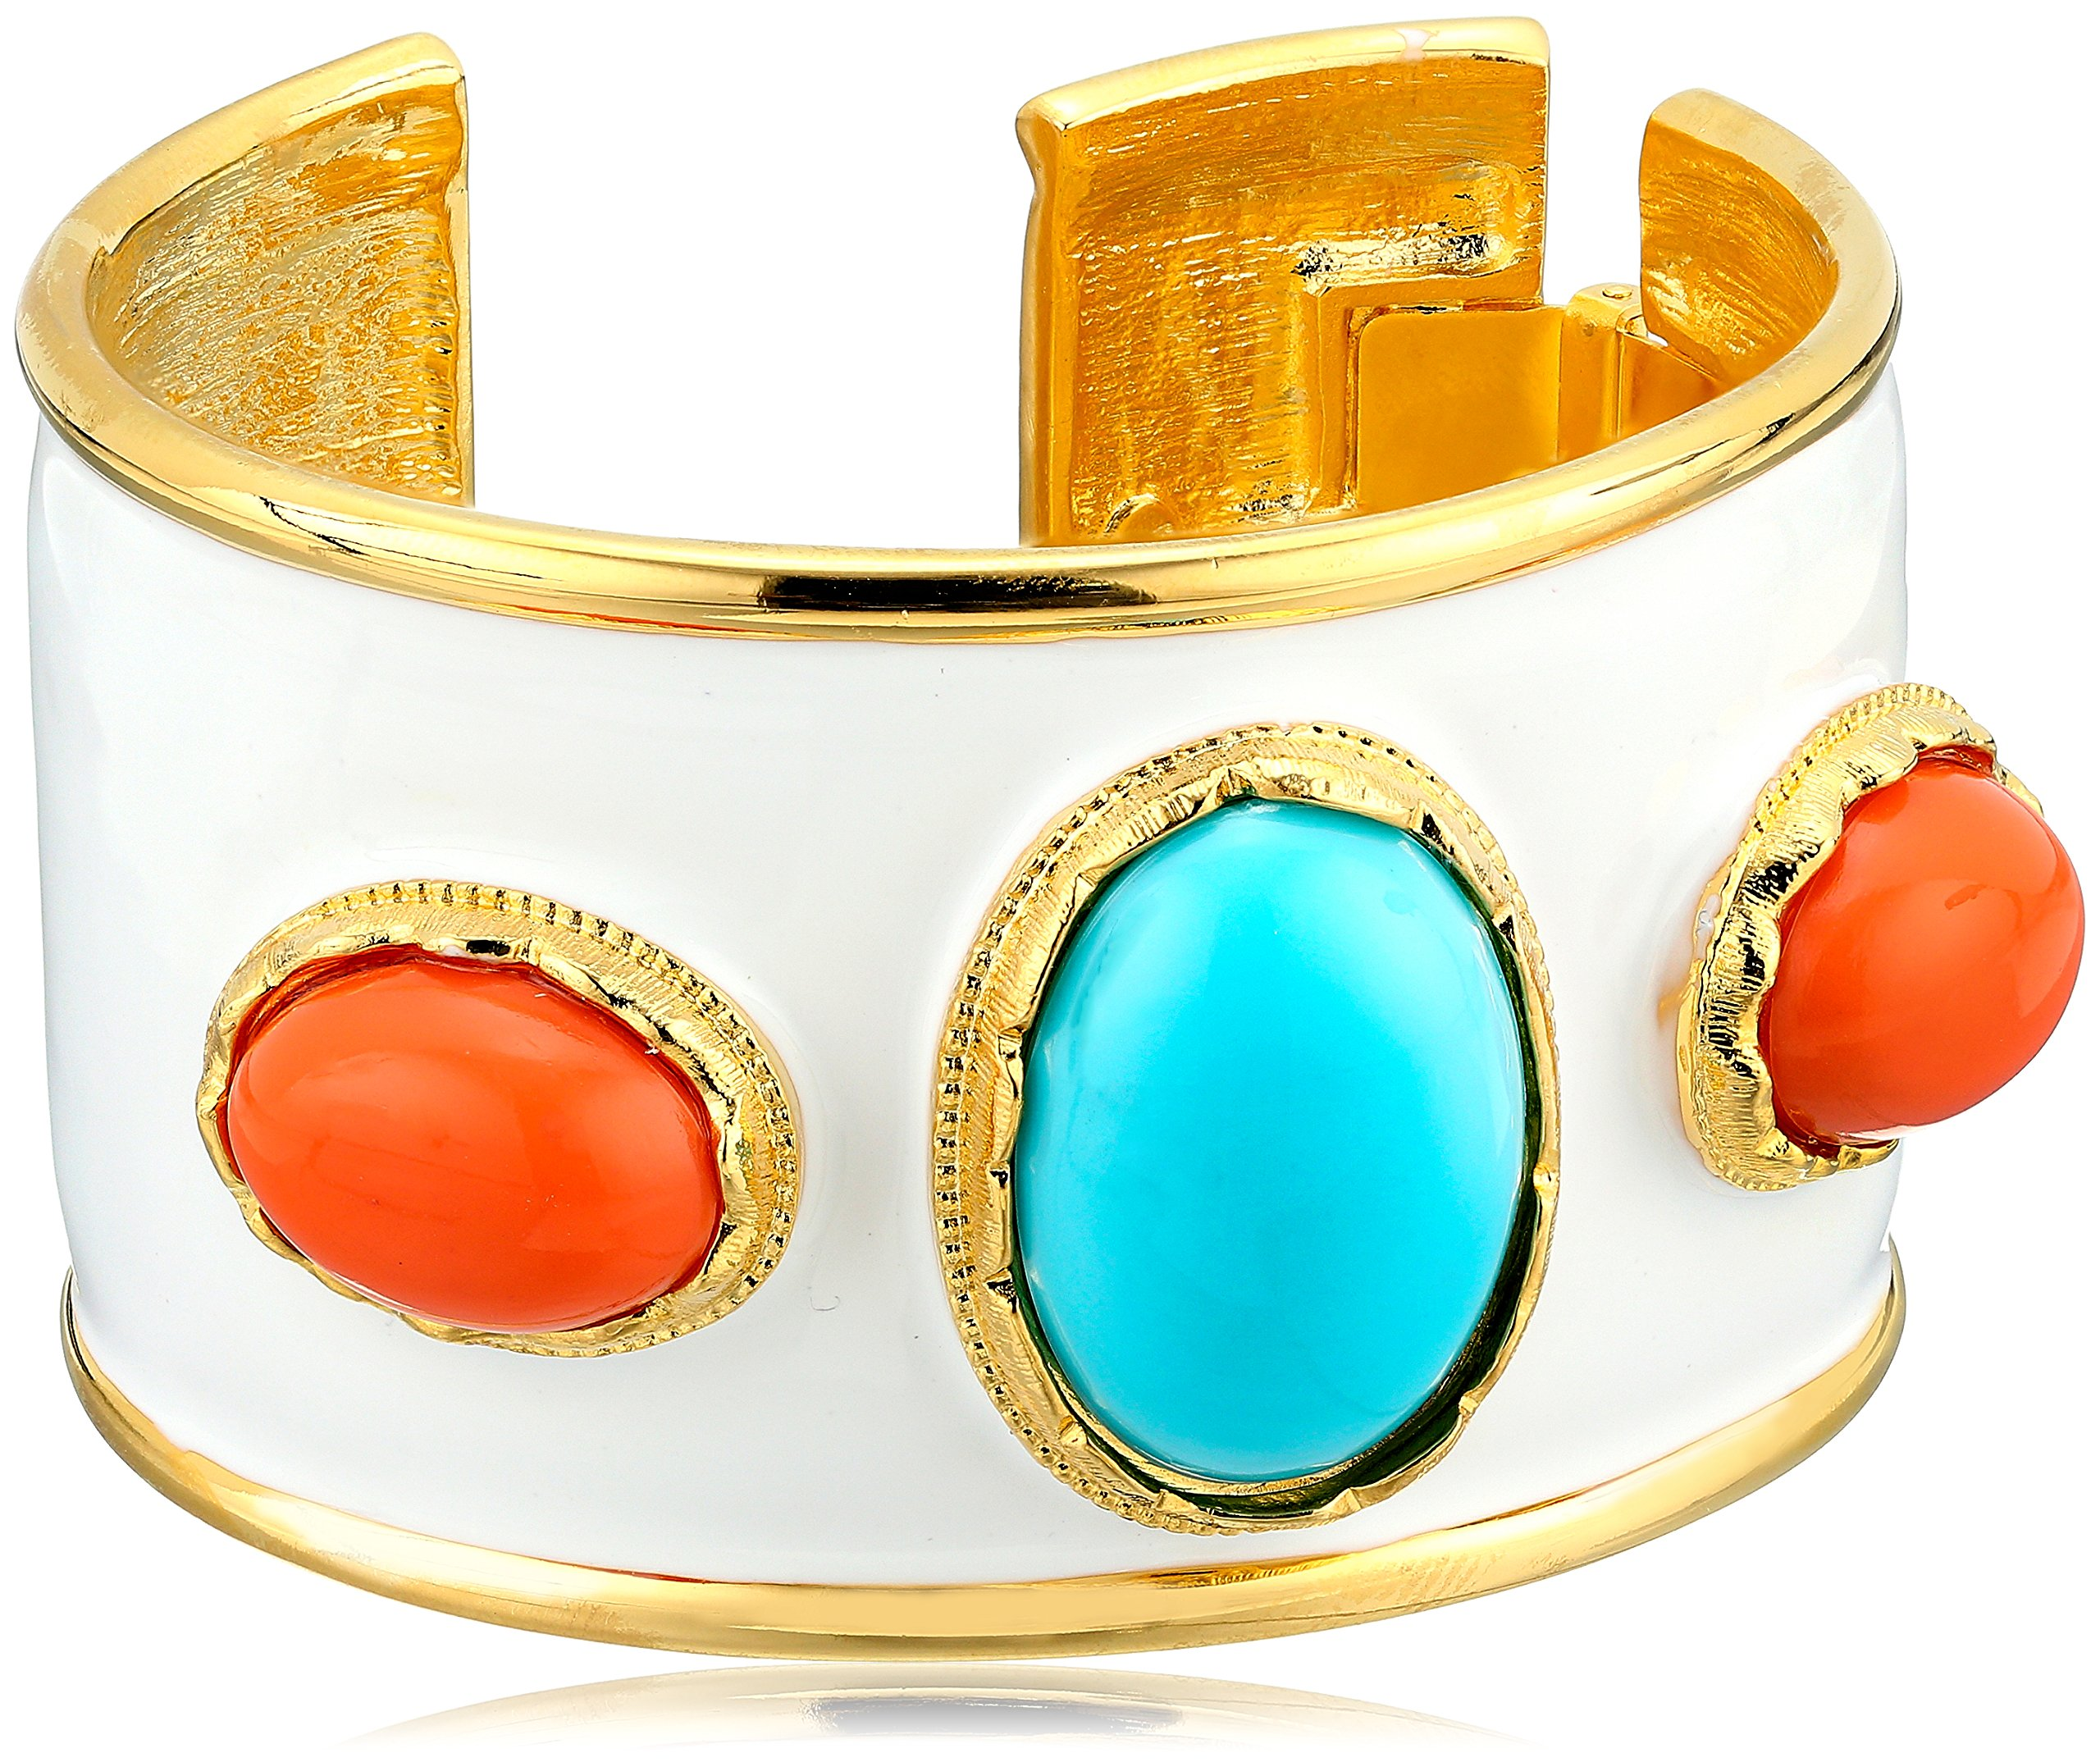 Kenneth Jay Lane White Enamel, Turquoise Color and Coral Cuff Bracelet